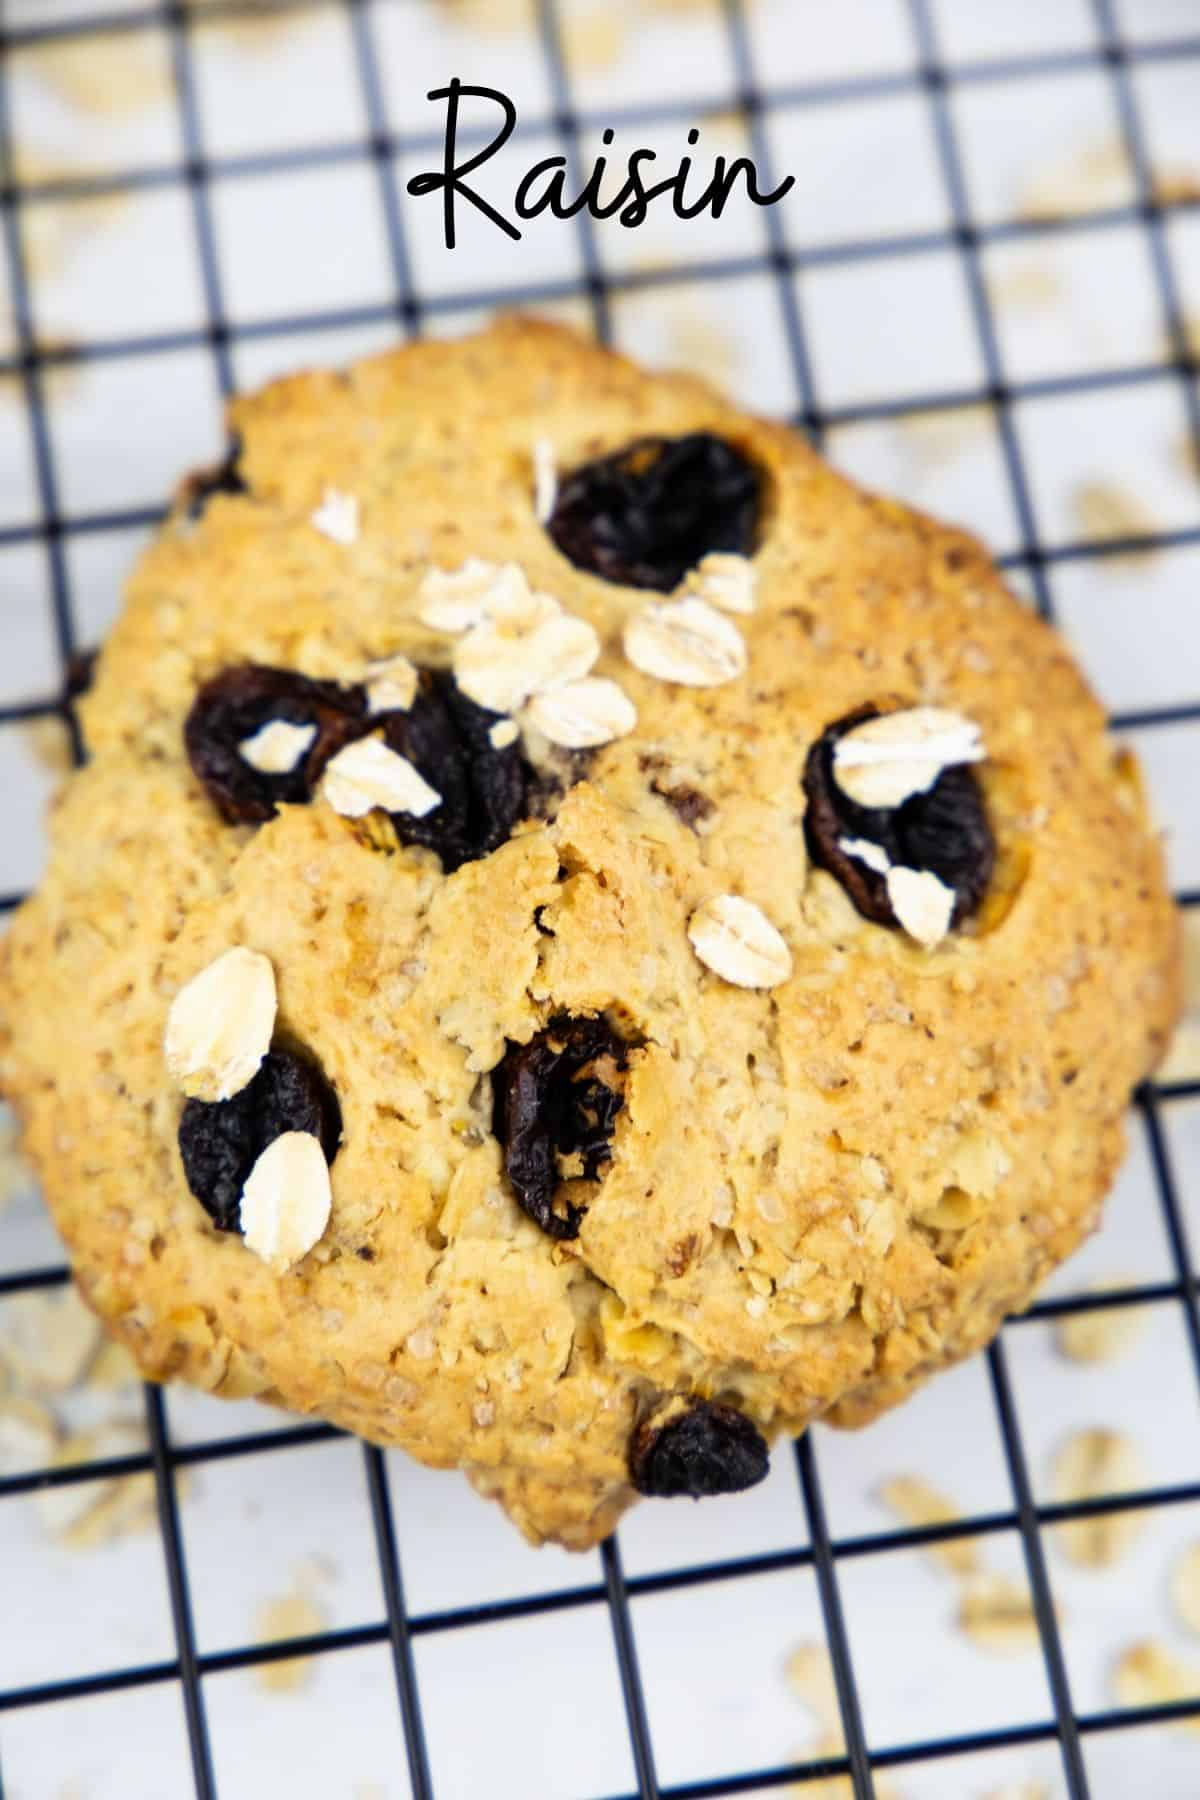 an oatmeal cookie with raisins on a cooling rack